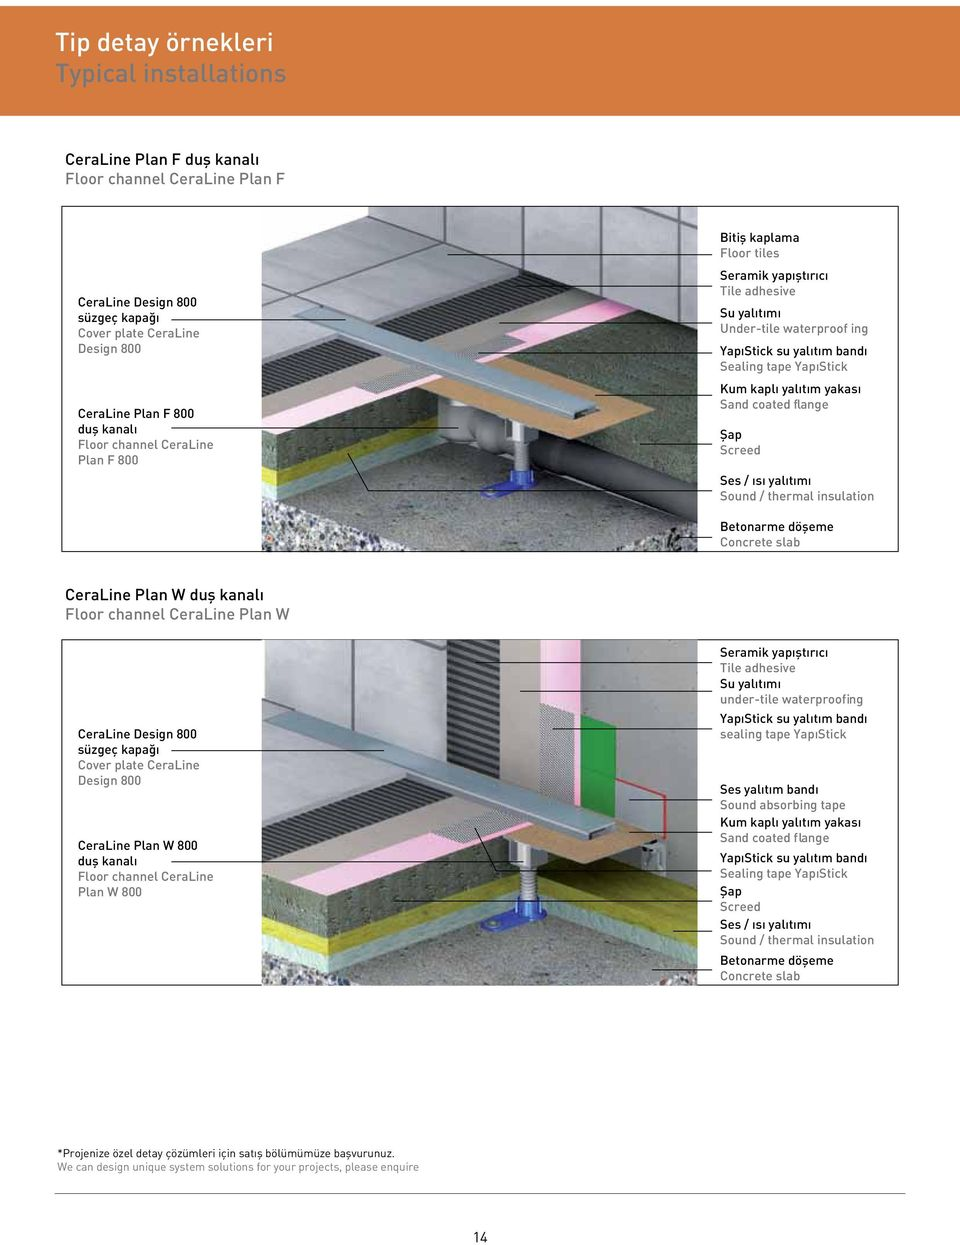 Sand coated flange fiap Screed Ses / s yal t m Sound / thermal insulation Betonarme döfleme Concrete slab CeraLine Plan W dufl kanal Floor channel CeraLine Plan W CeraLine Design 800 süzgeç kapa